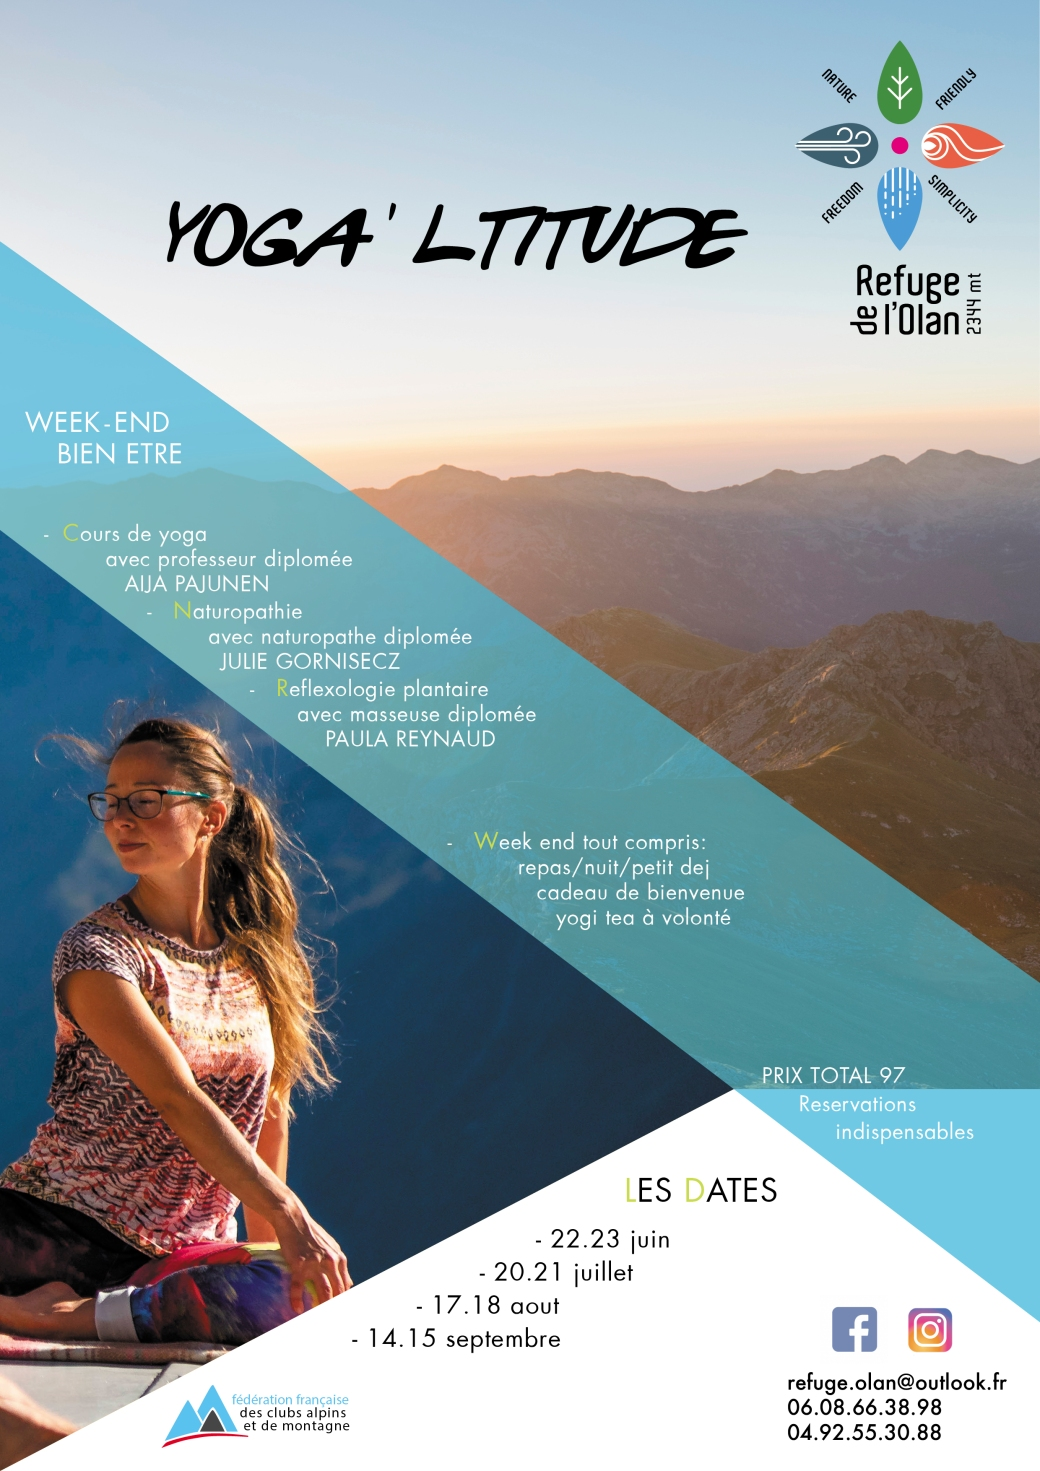 yogaltitude flyer 2019